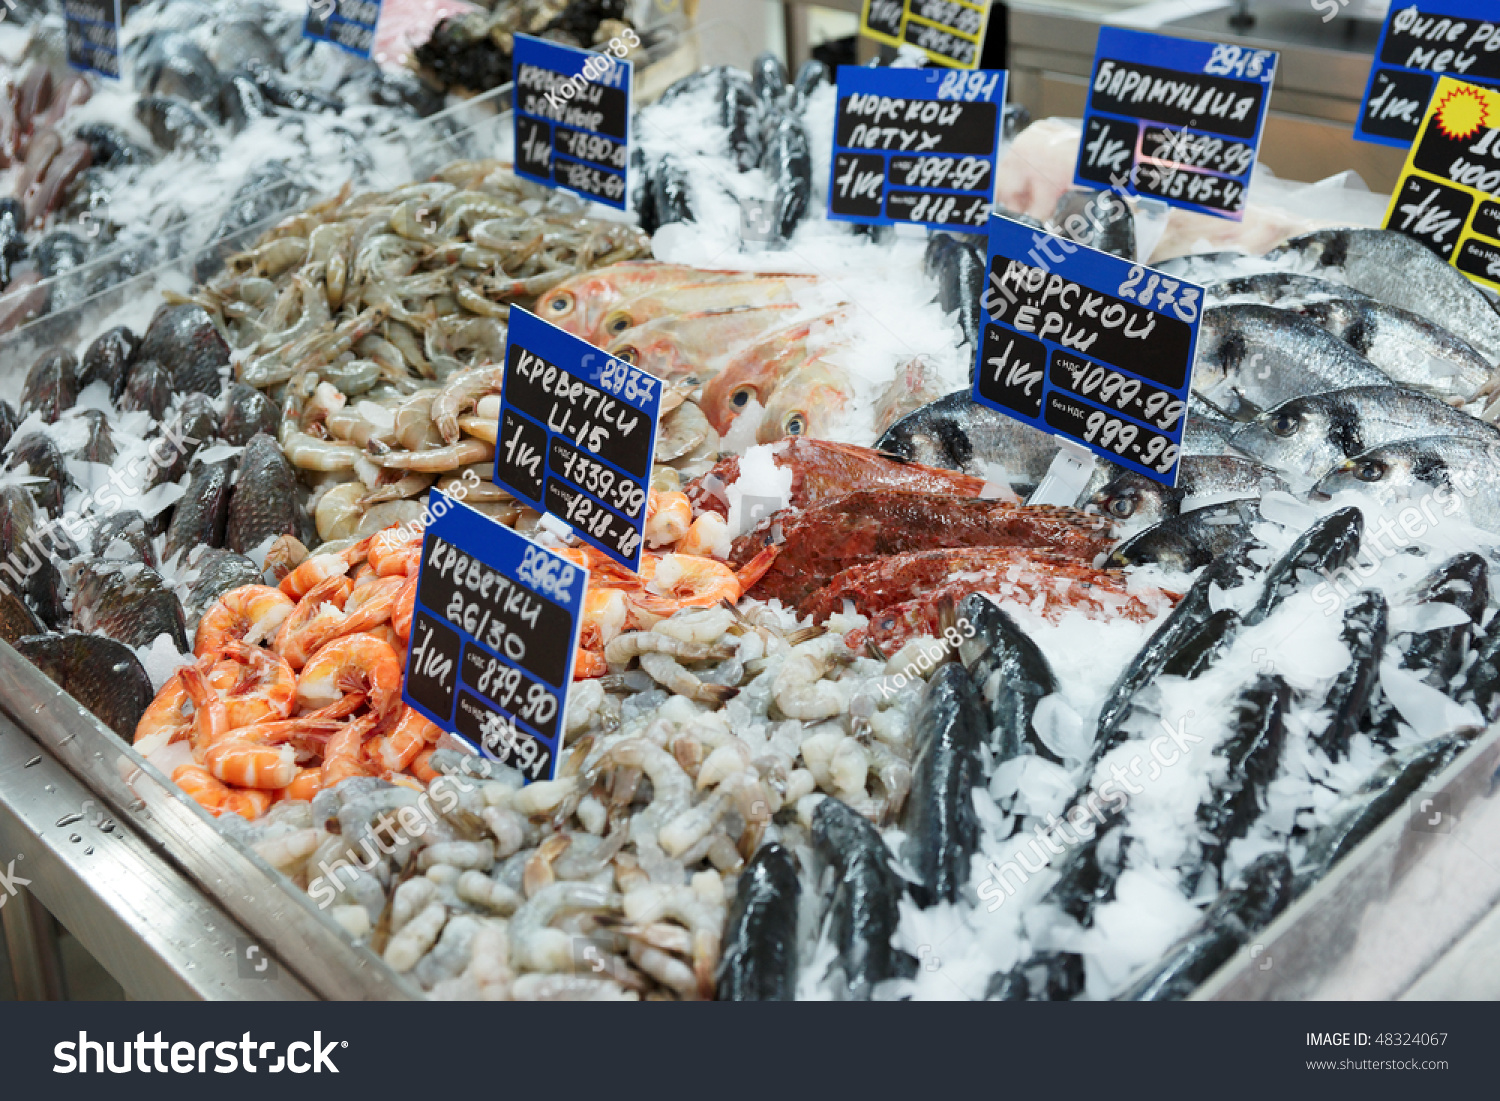 Variety of fish and seafood on cooled market display tms for Seafood fish market